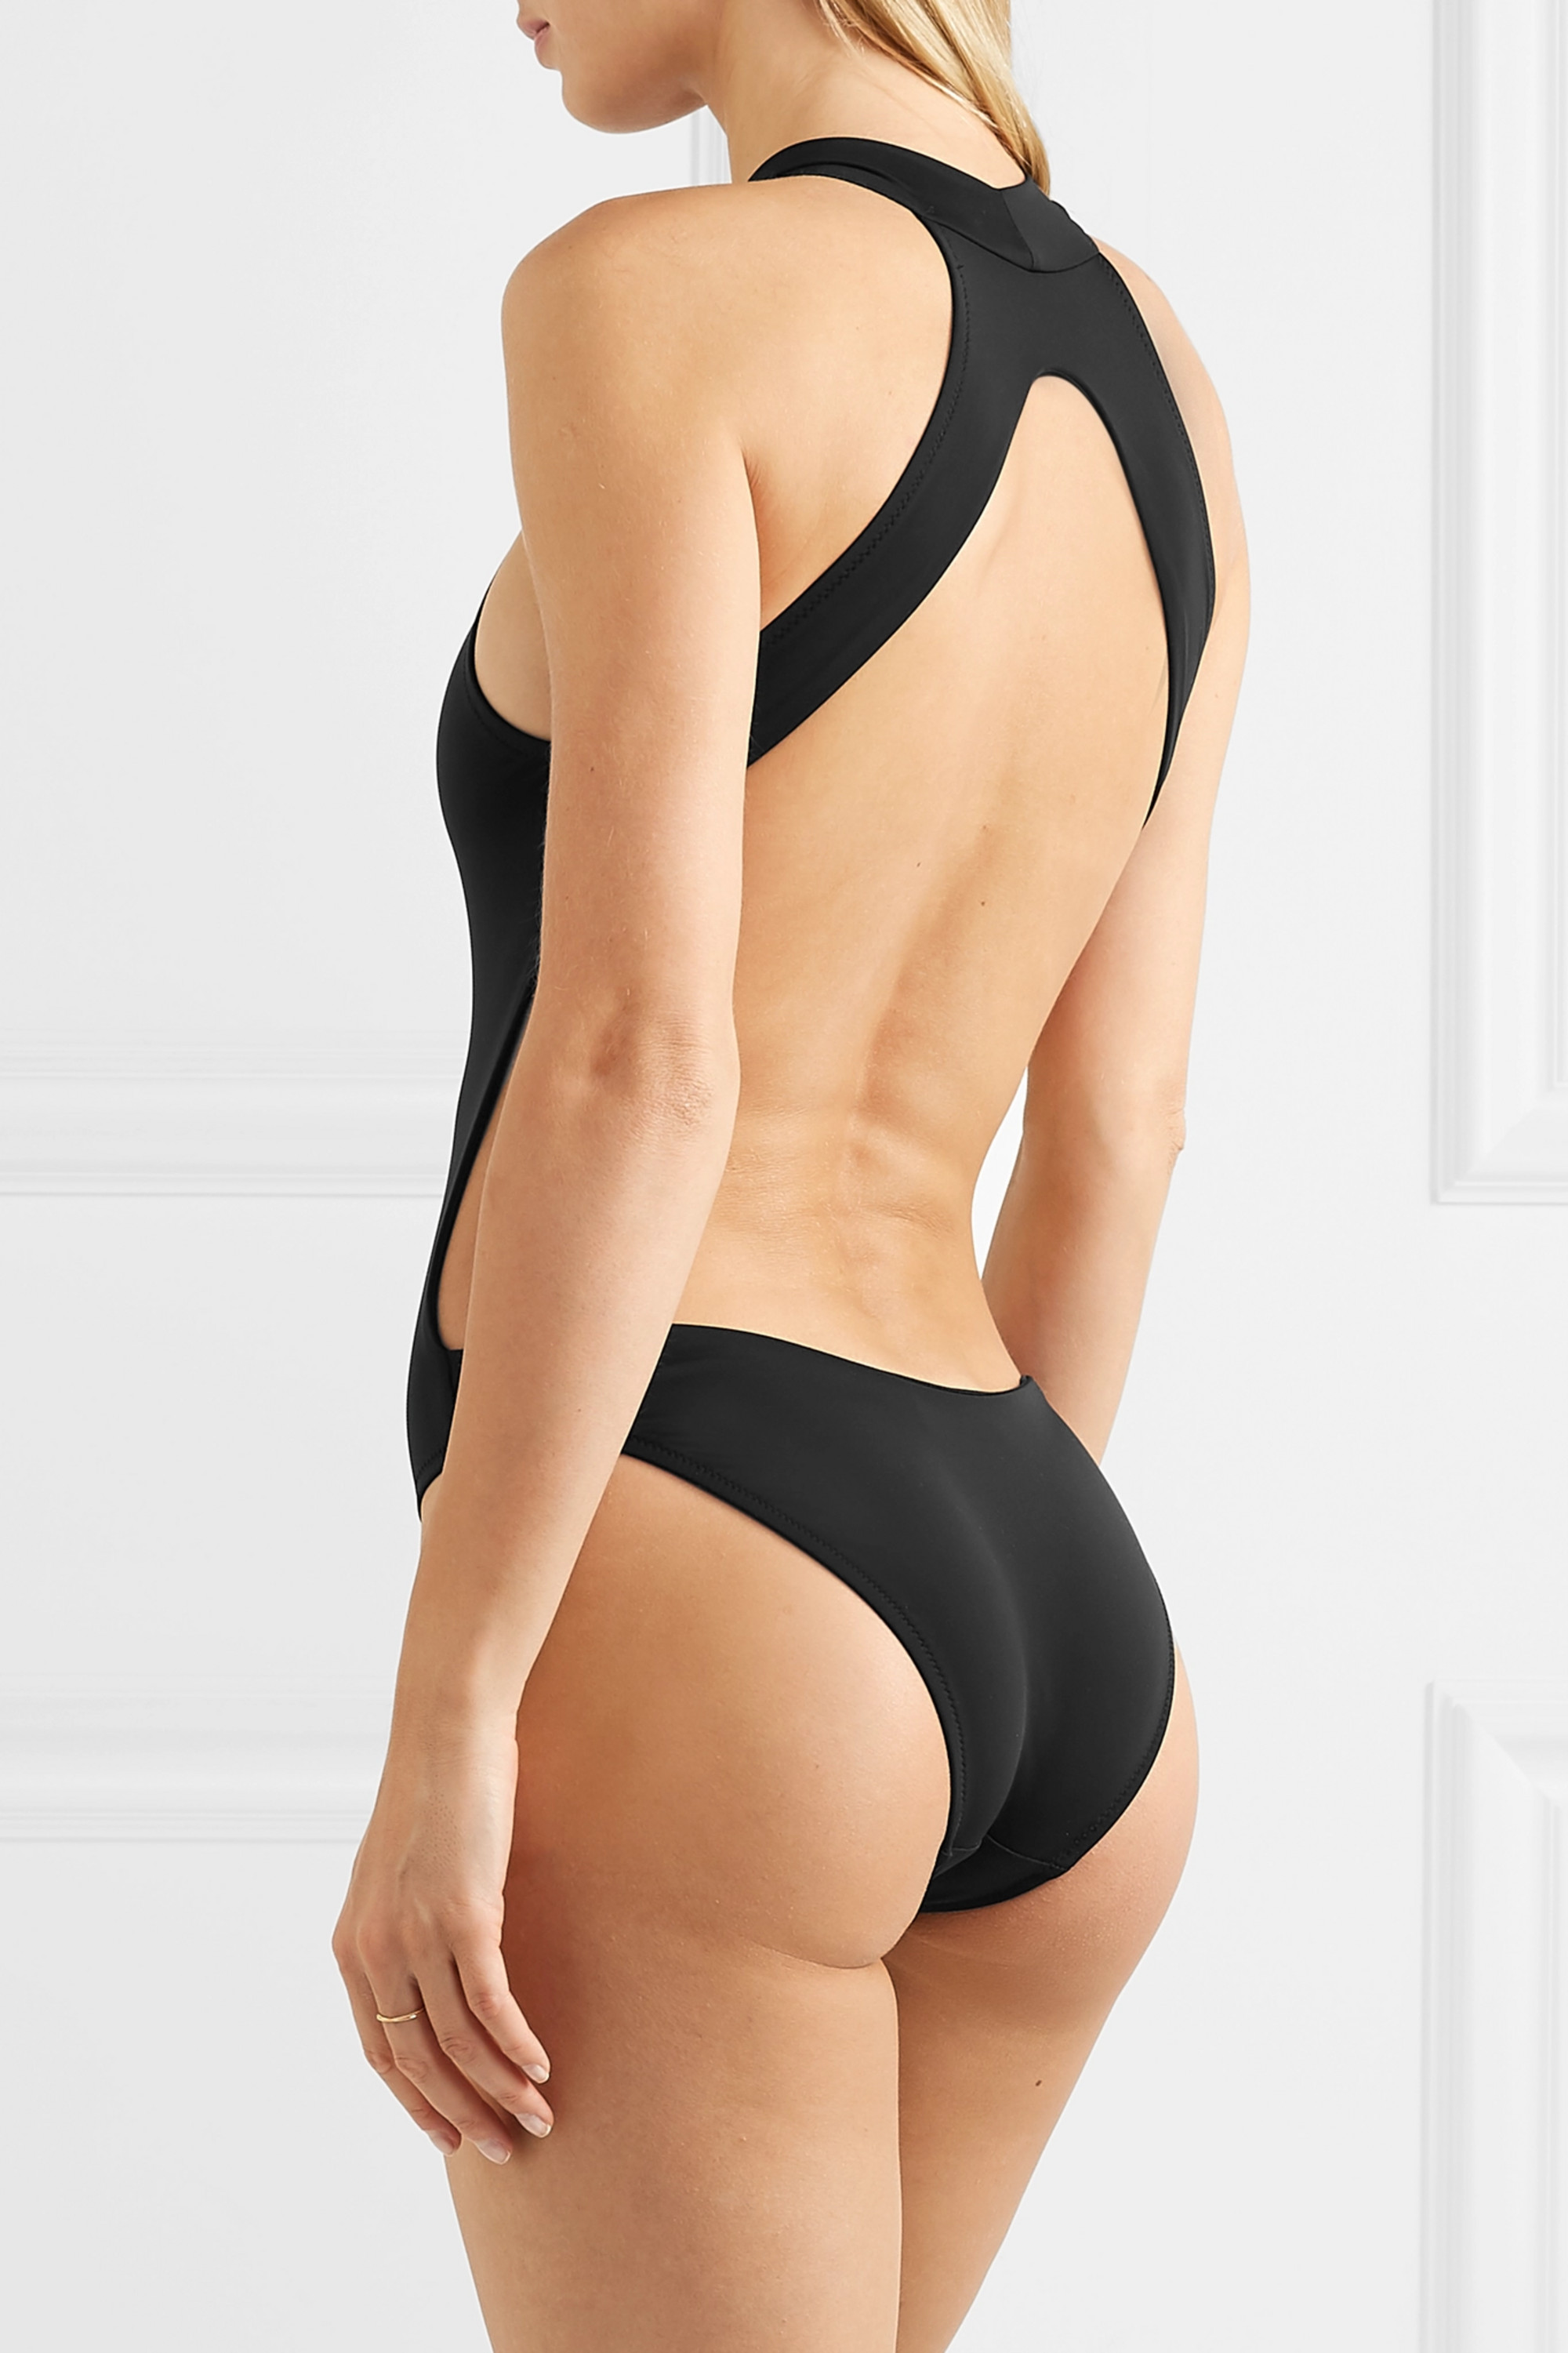 allSisters Olympic swimsuit